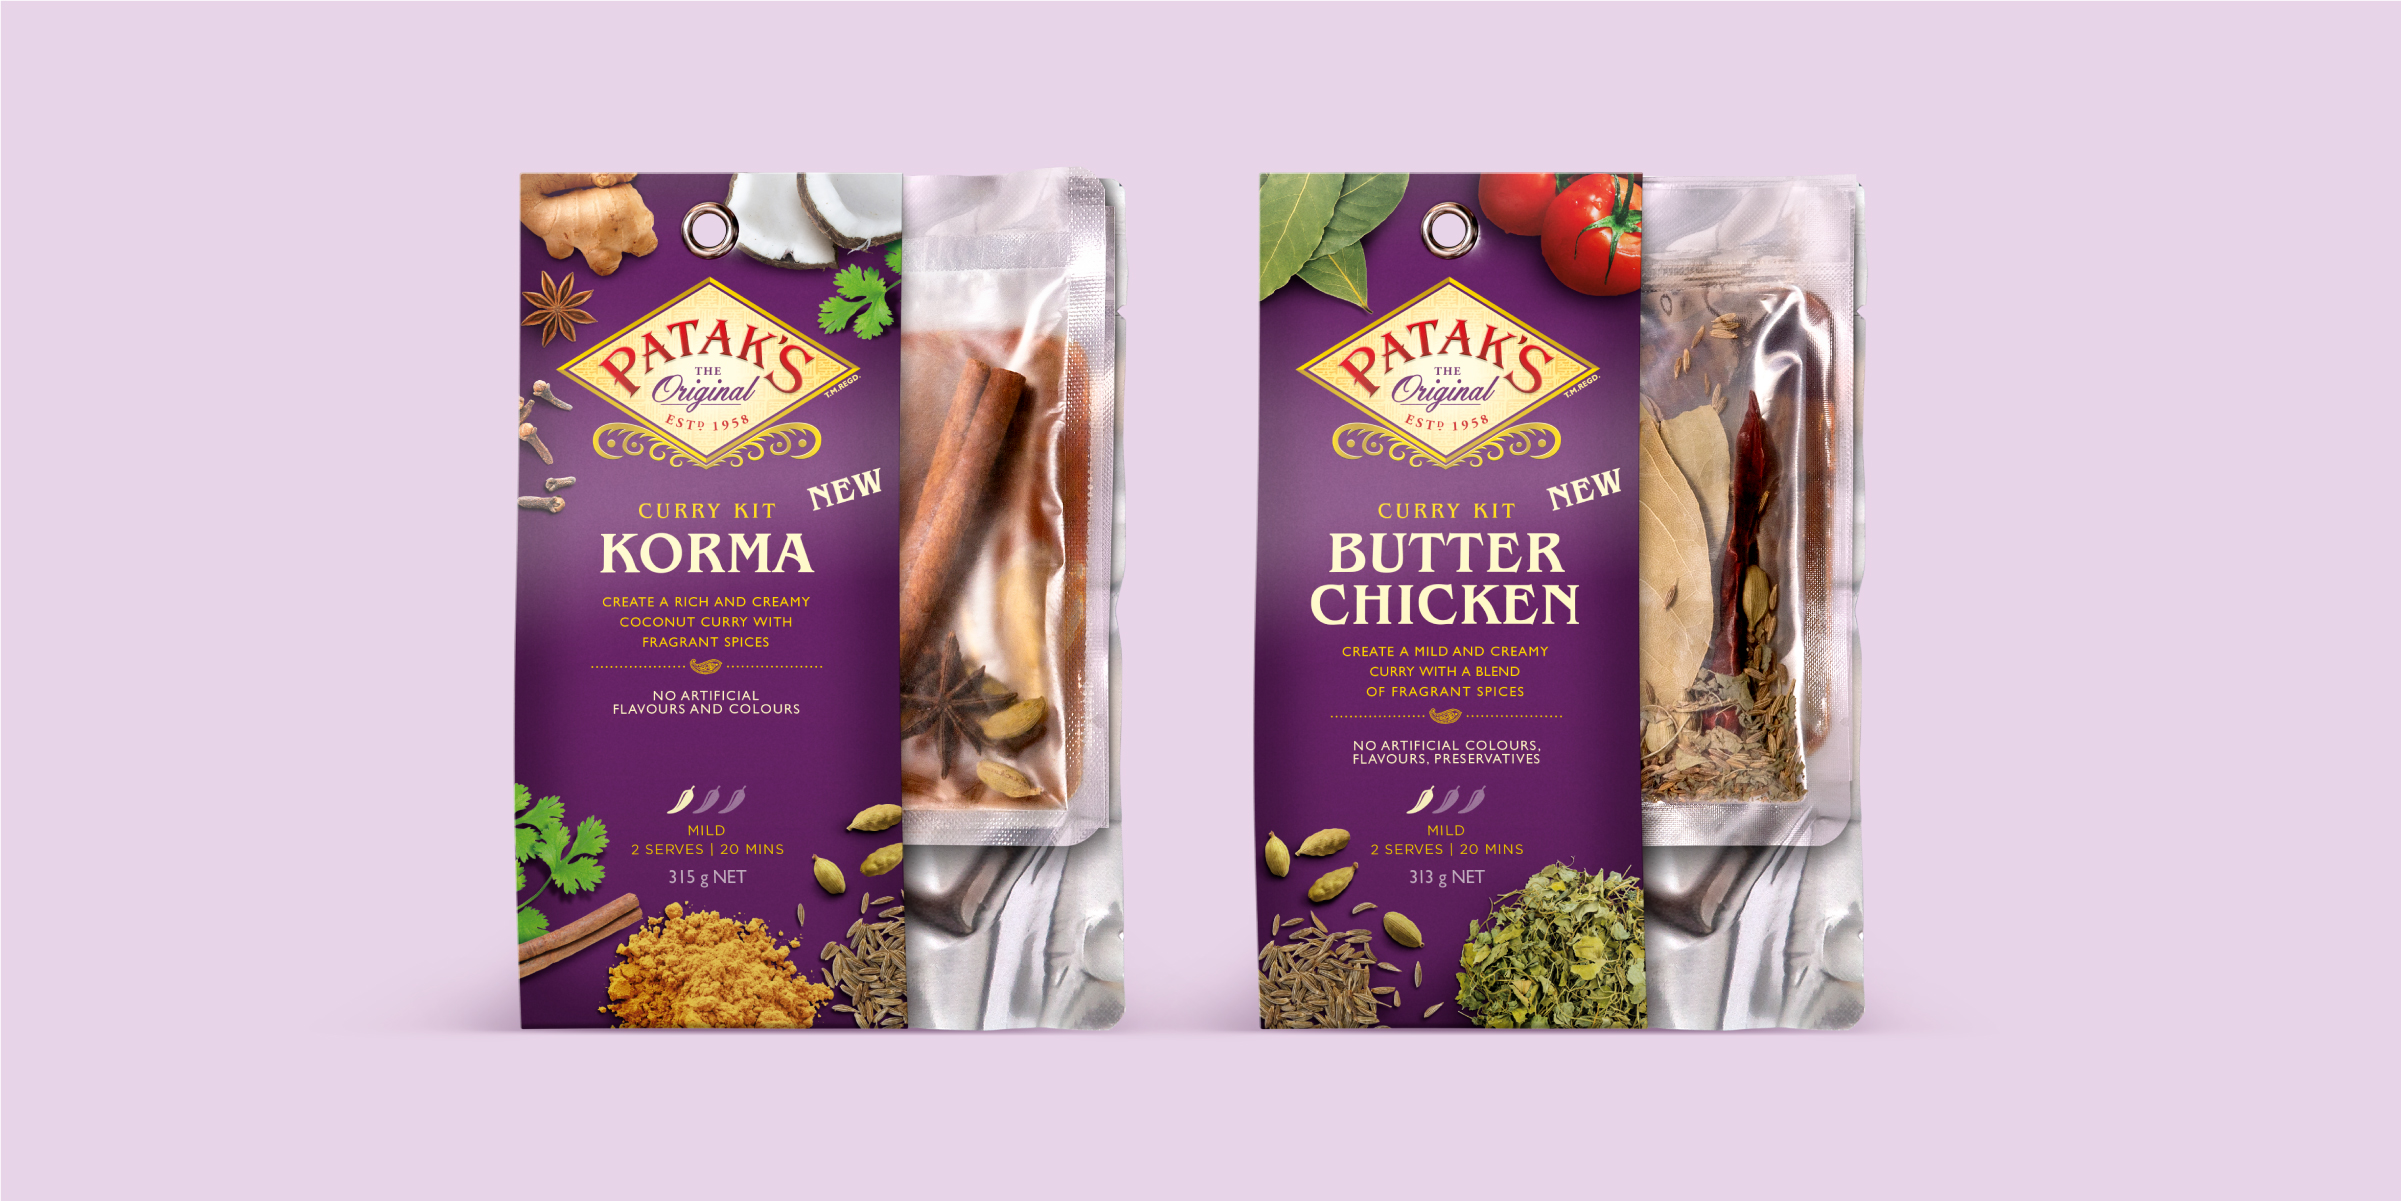 Pataks Curry Kit Meal Kit Davidson Branding We Grow FMCG Packaging